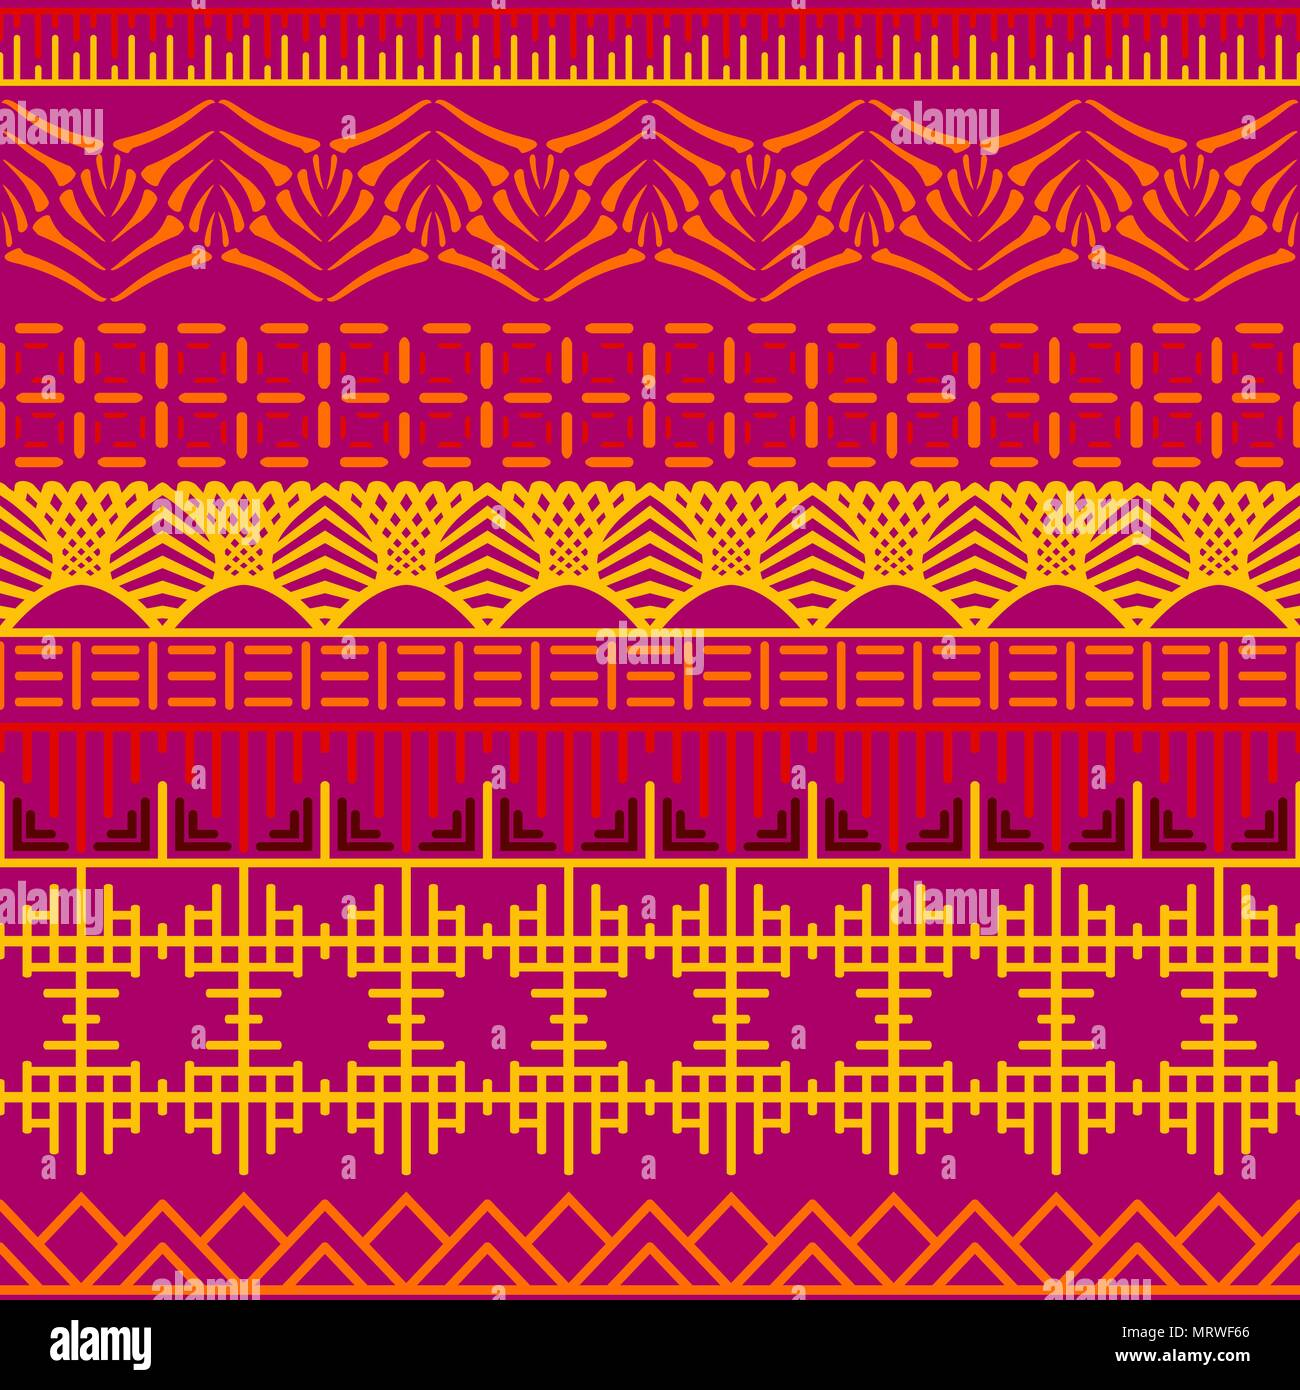 Tribal Ethnic Seamless Pattern Abstract Geometric Ornament With African MotifsVector Illustration Perfect For Textile Print Wallpaper Cloth Design